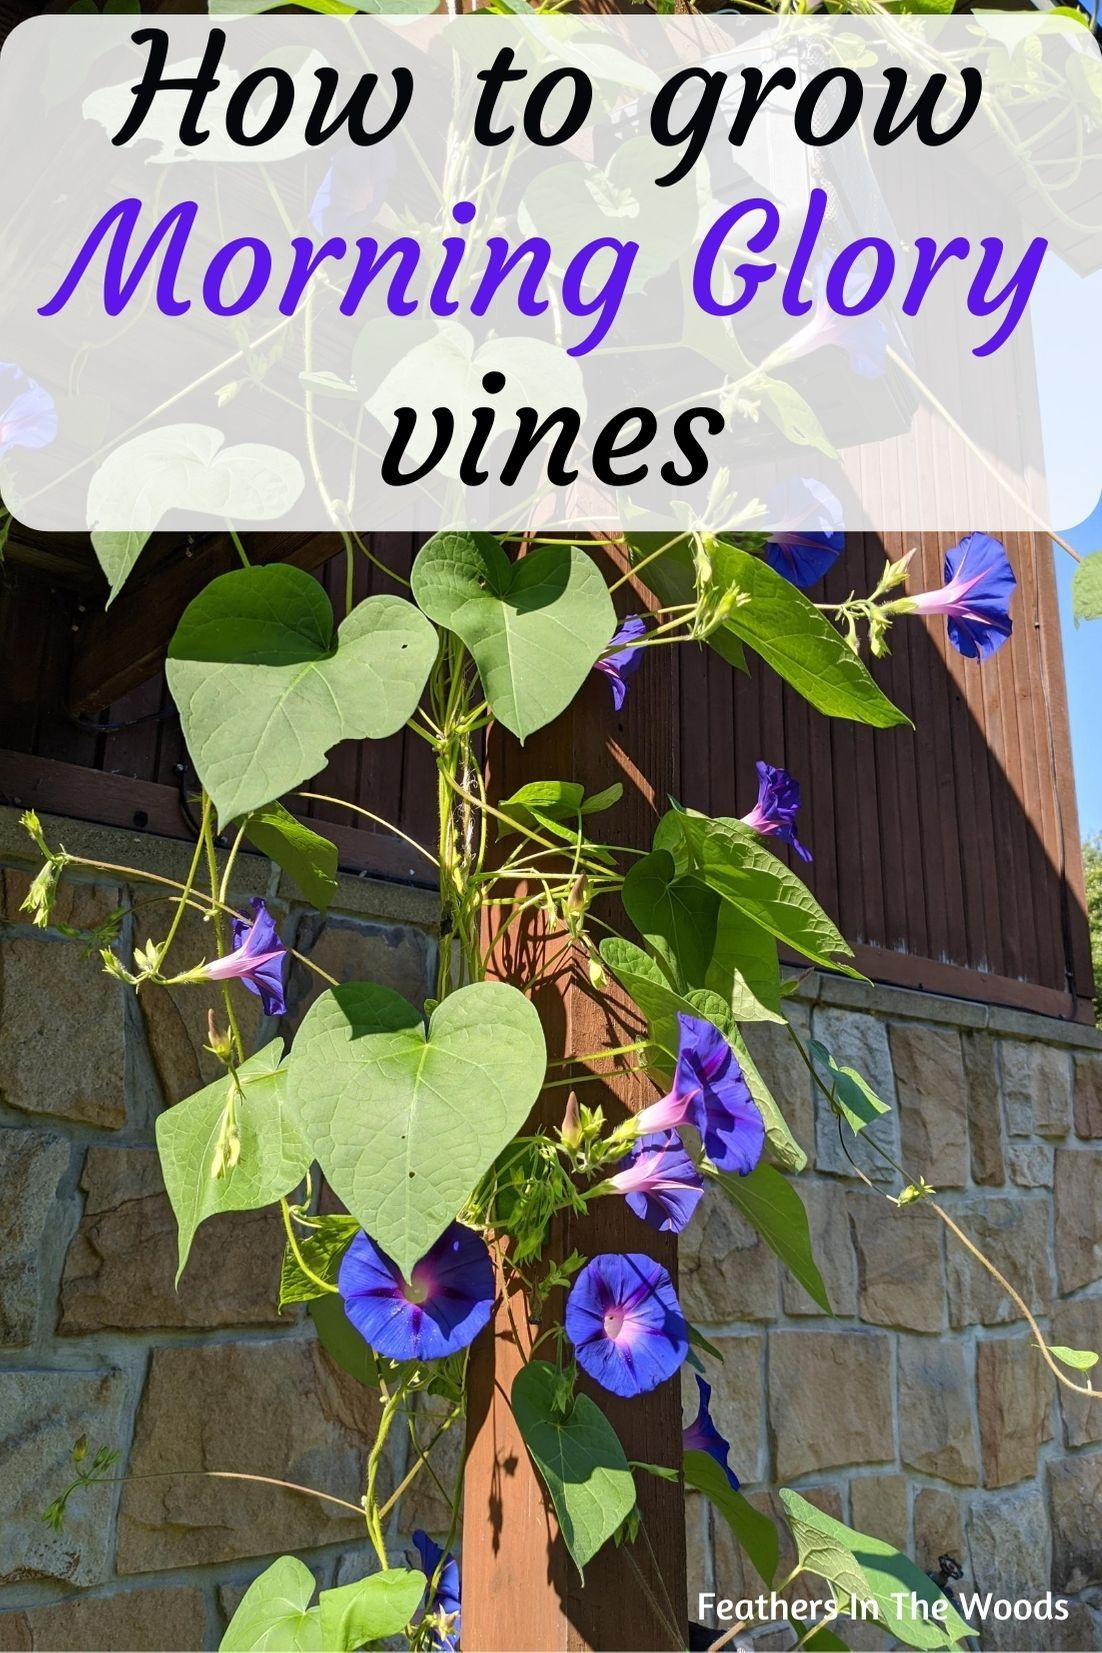 How To Grow Morning Glories In 2020 Morning Glory Vine Morning Glory Plant Morning Glory Flowers